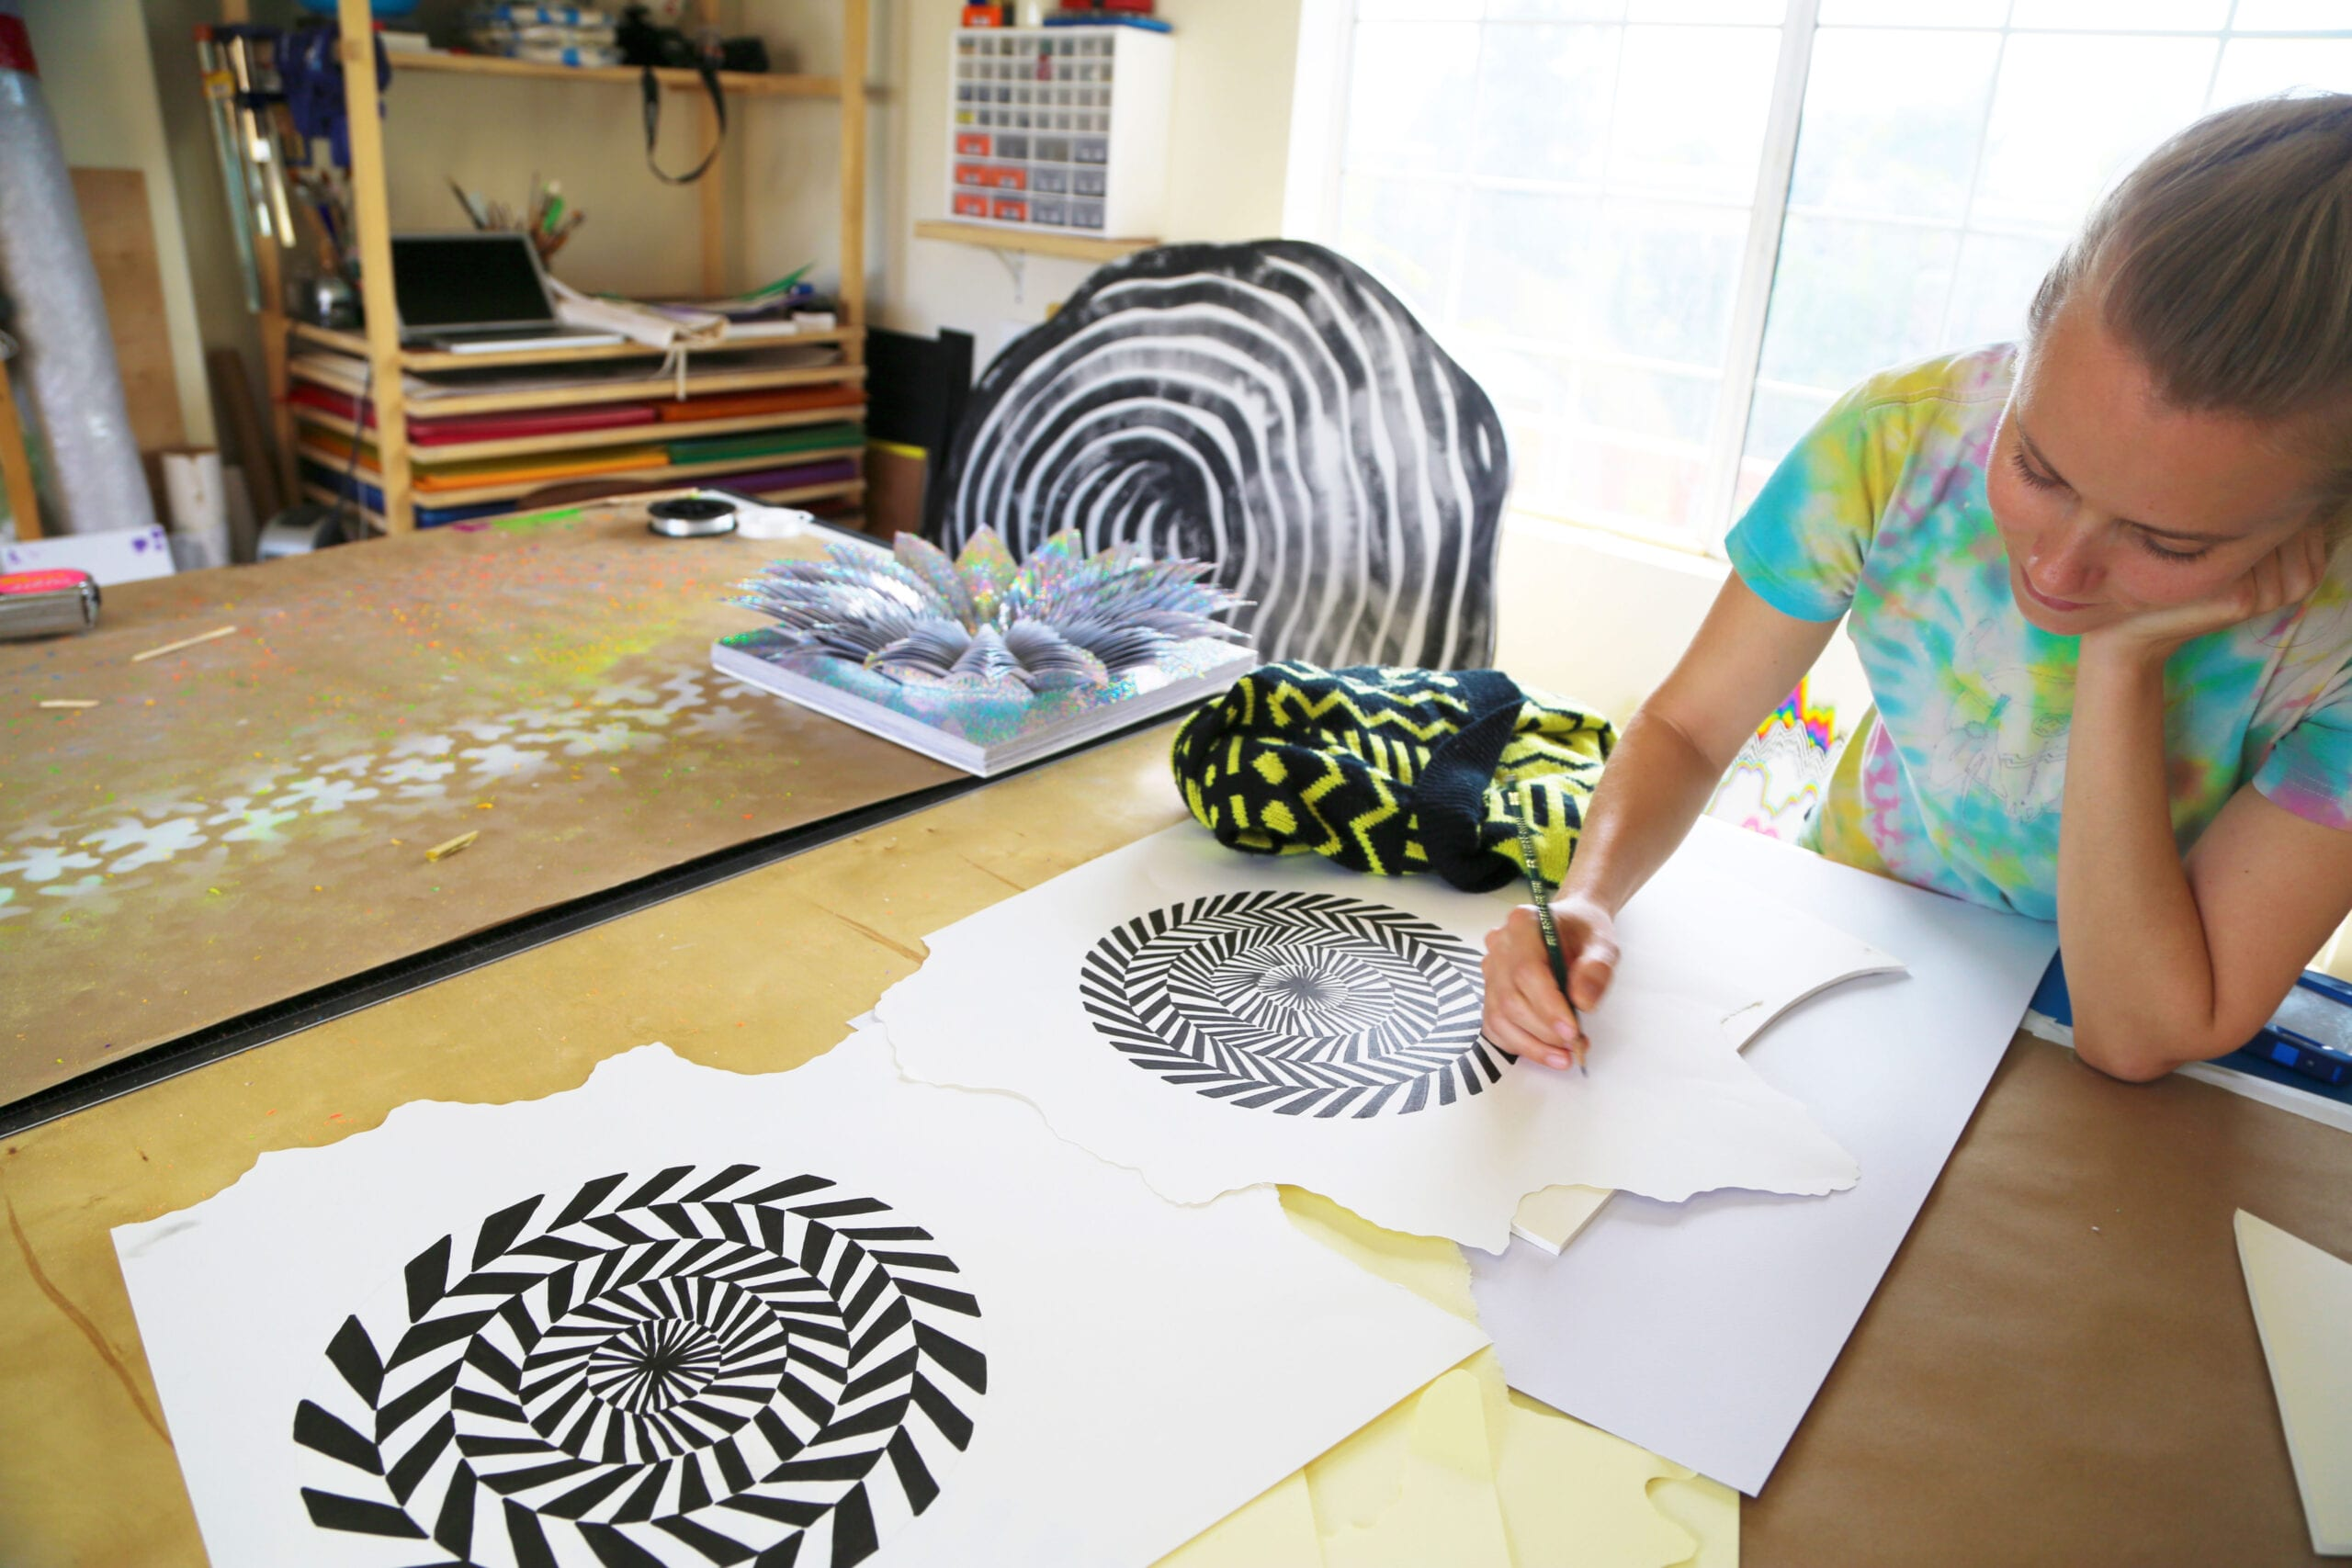 Photos of works in progress and Jen Stark at her studio. Image by Daniel Rolnik, 2013.